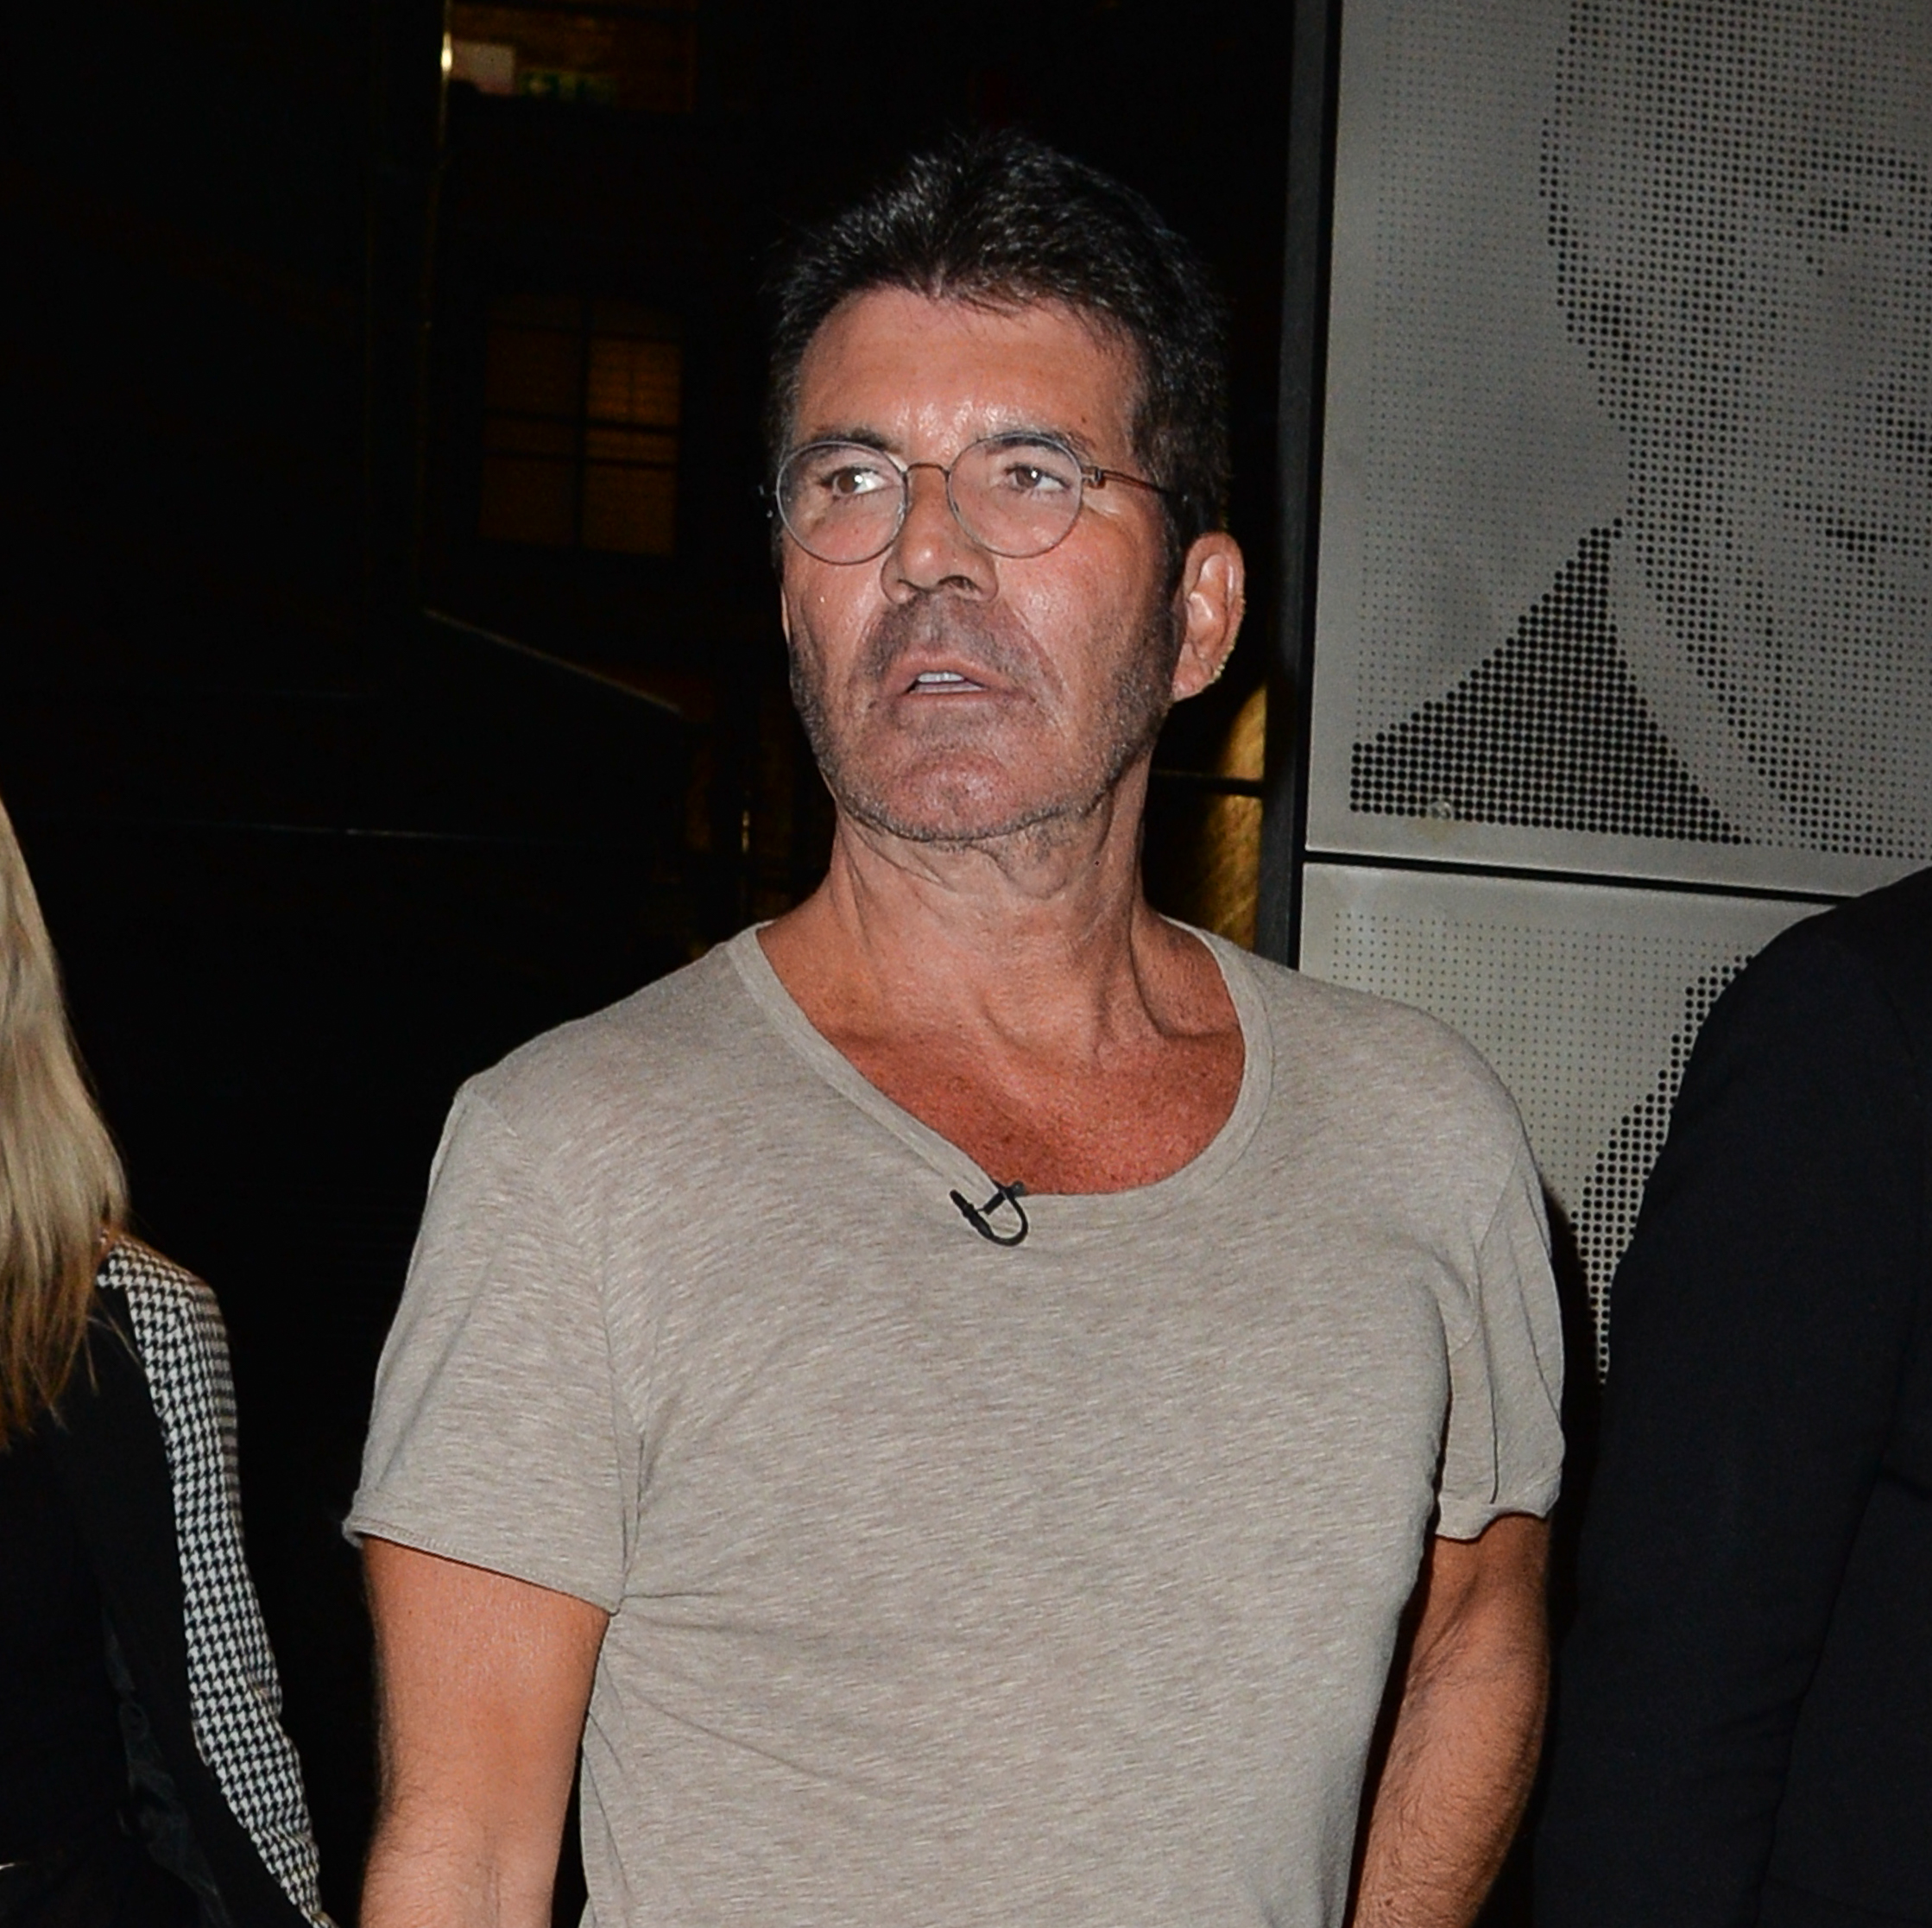 Simon Cowell weight loss (Credit: Splash News)